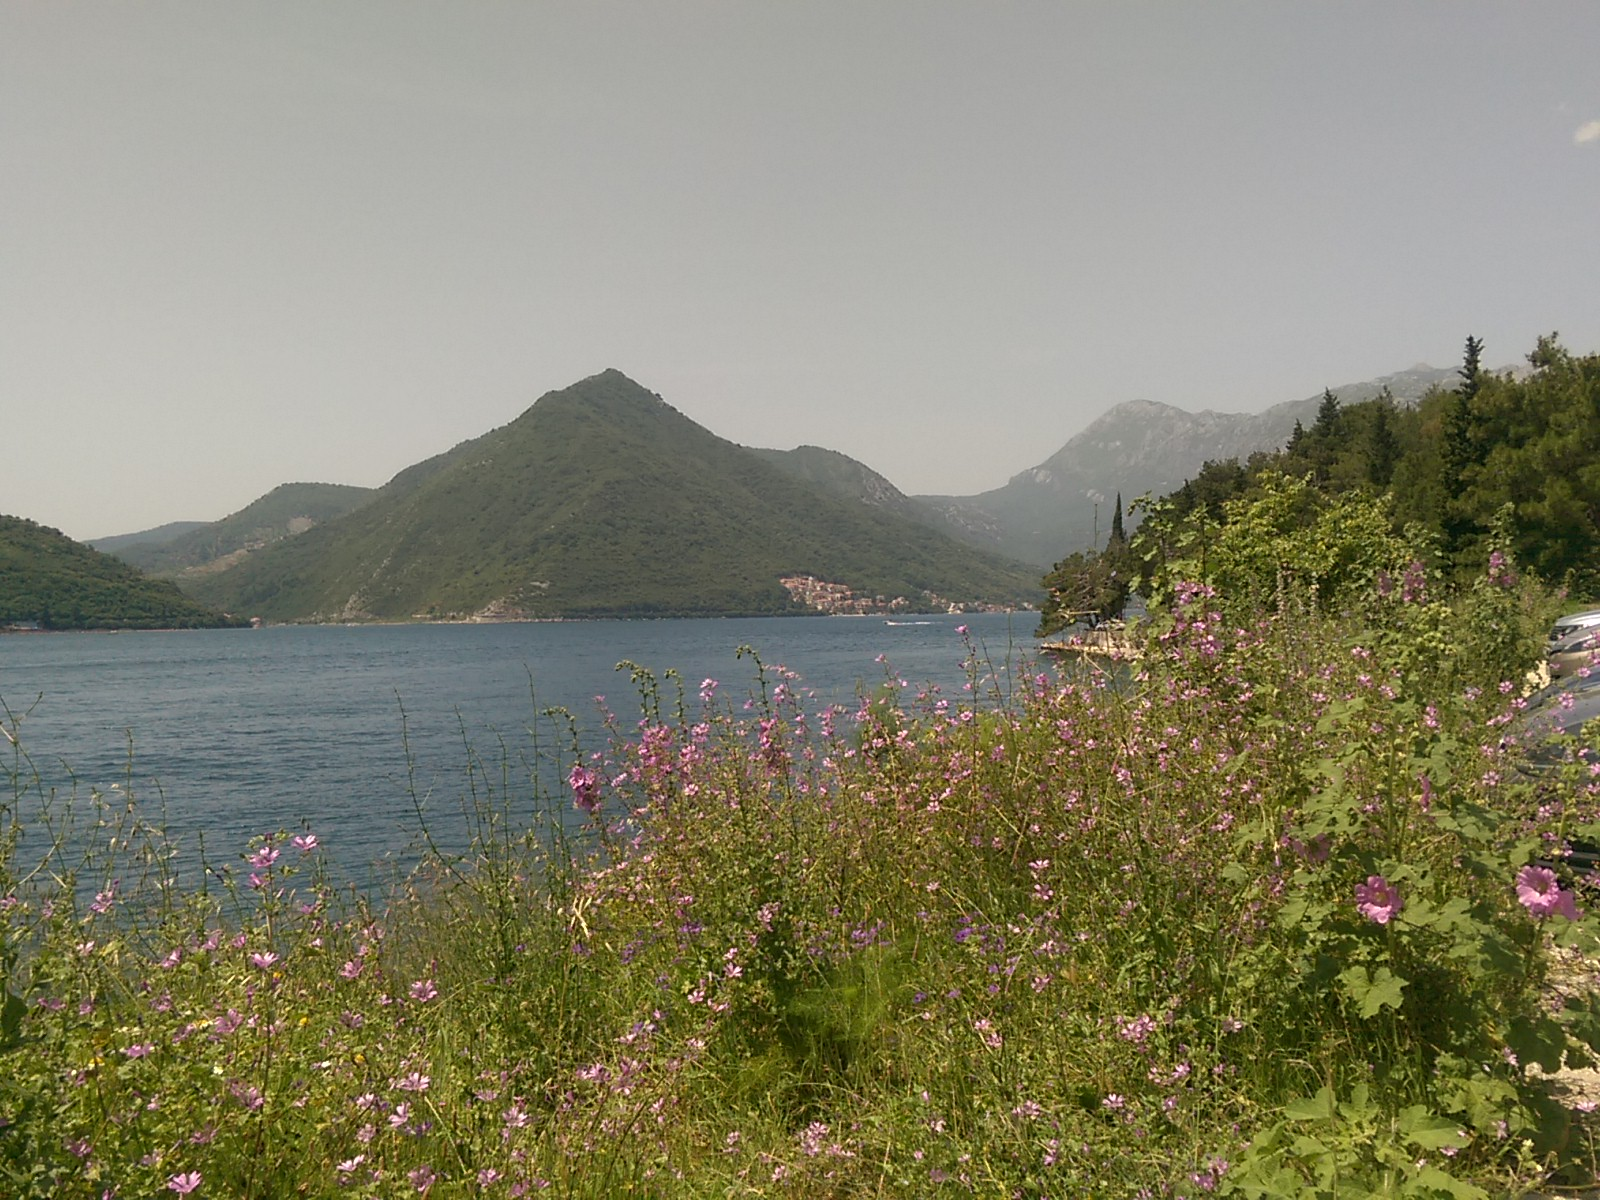 Fluffy green leaves with pink flowers backed by the blue sea and pointy green distant hills